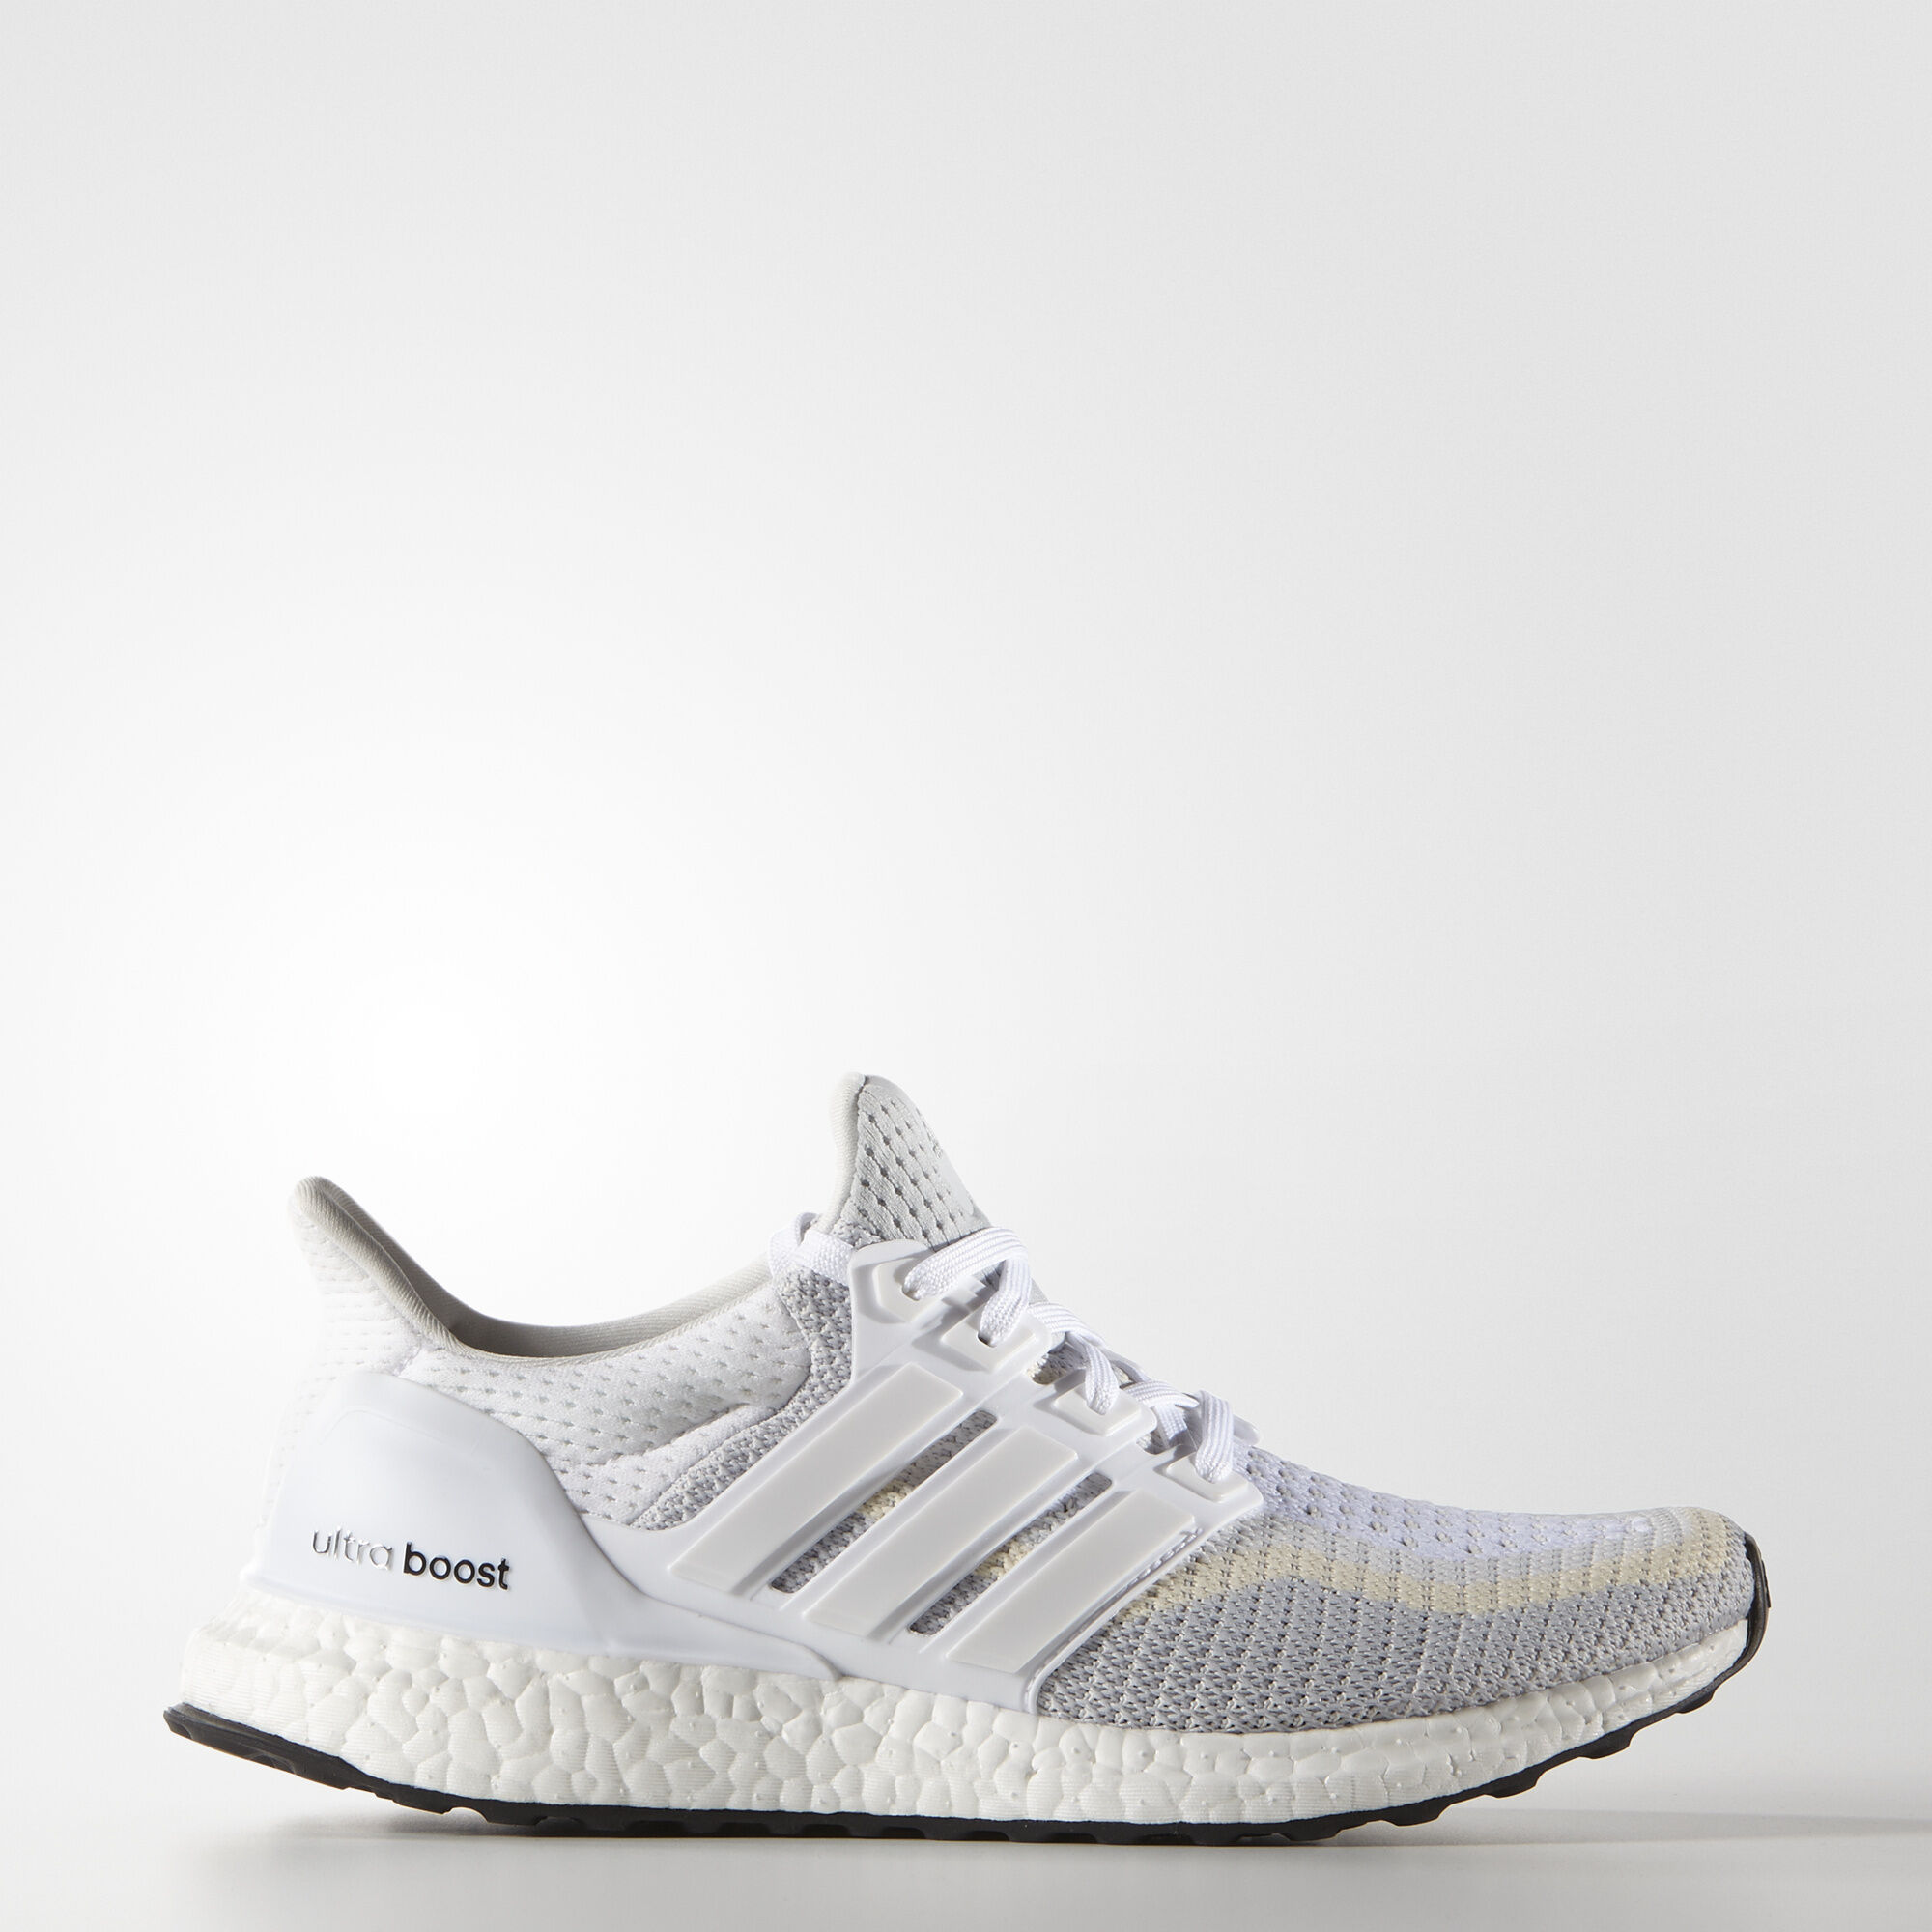 adidas boost shoes for sale